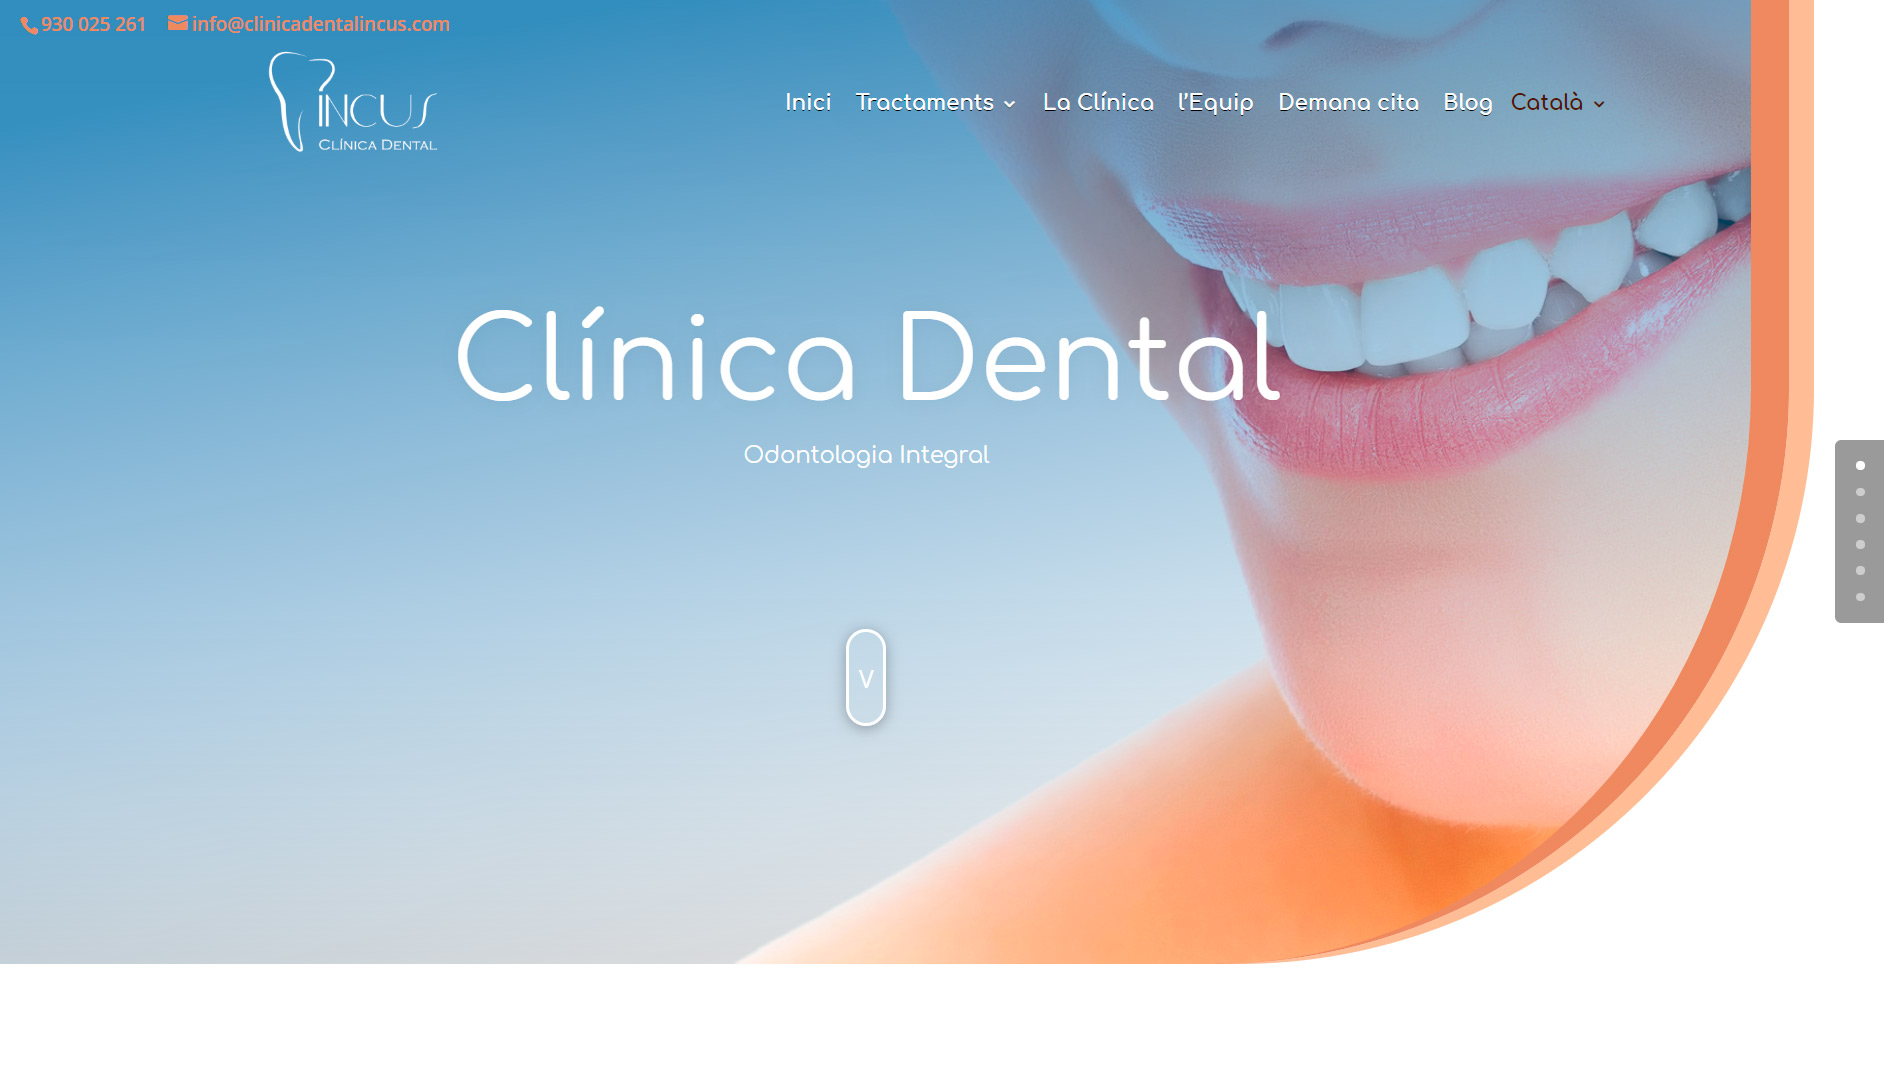 Incus Dental